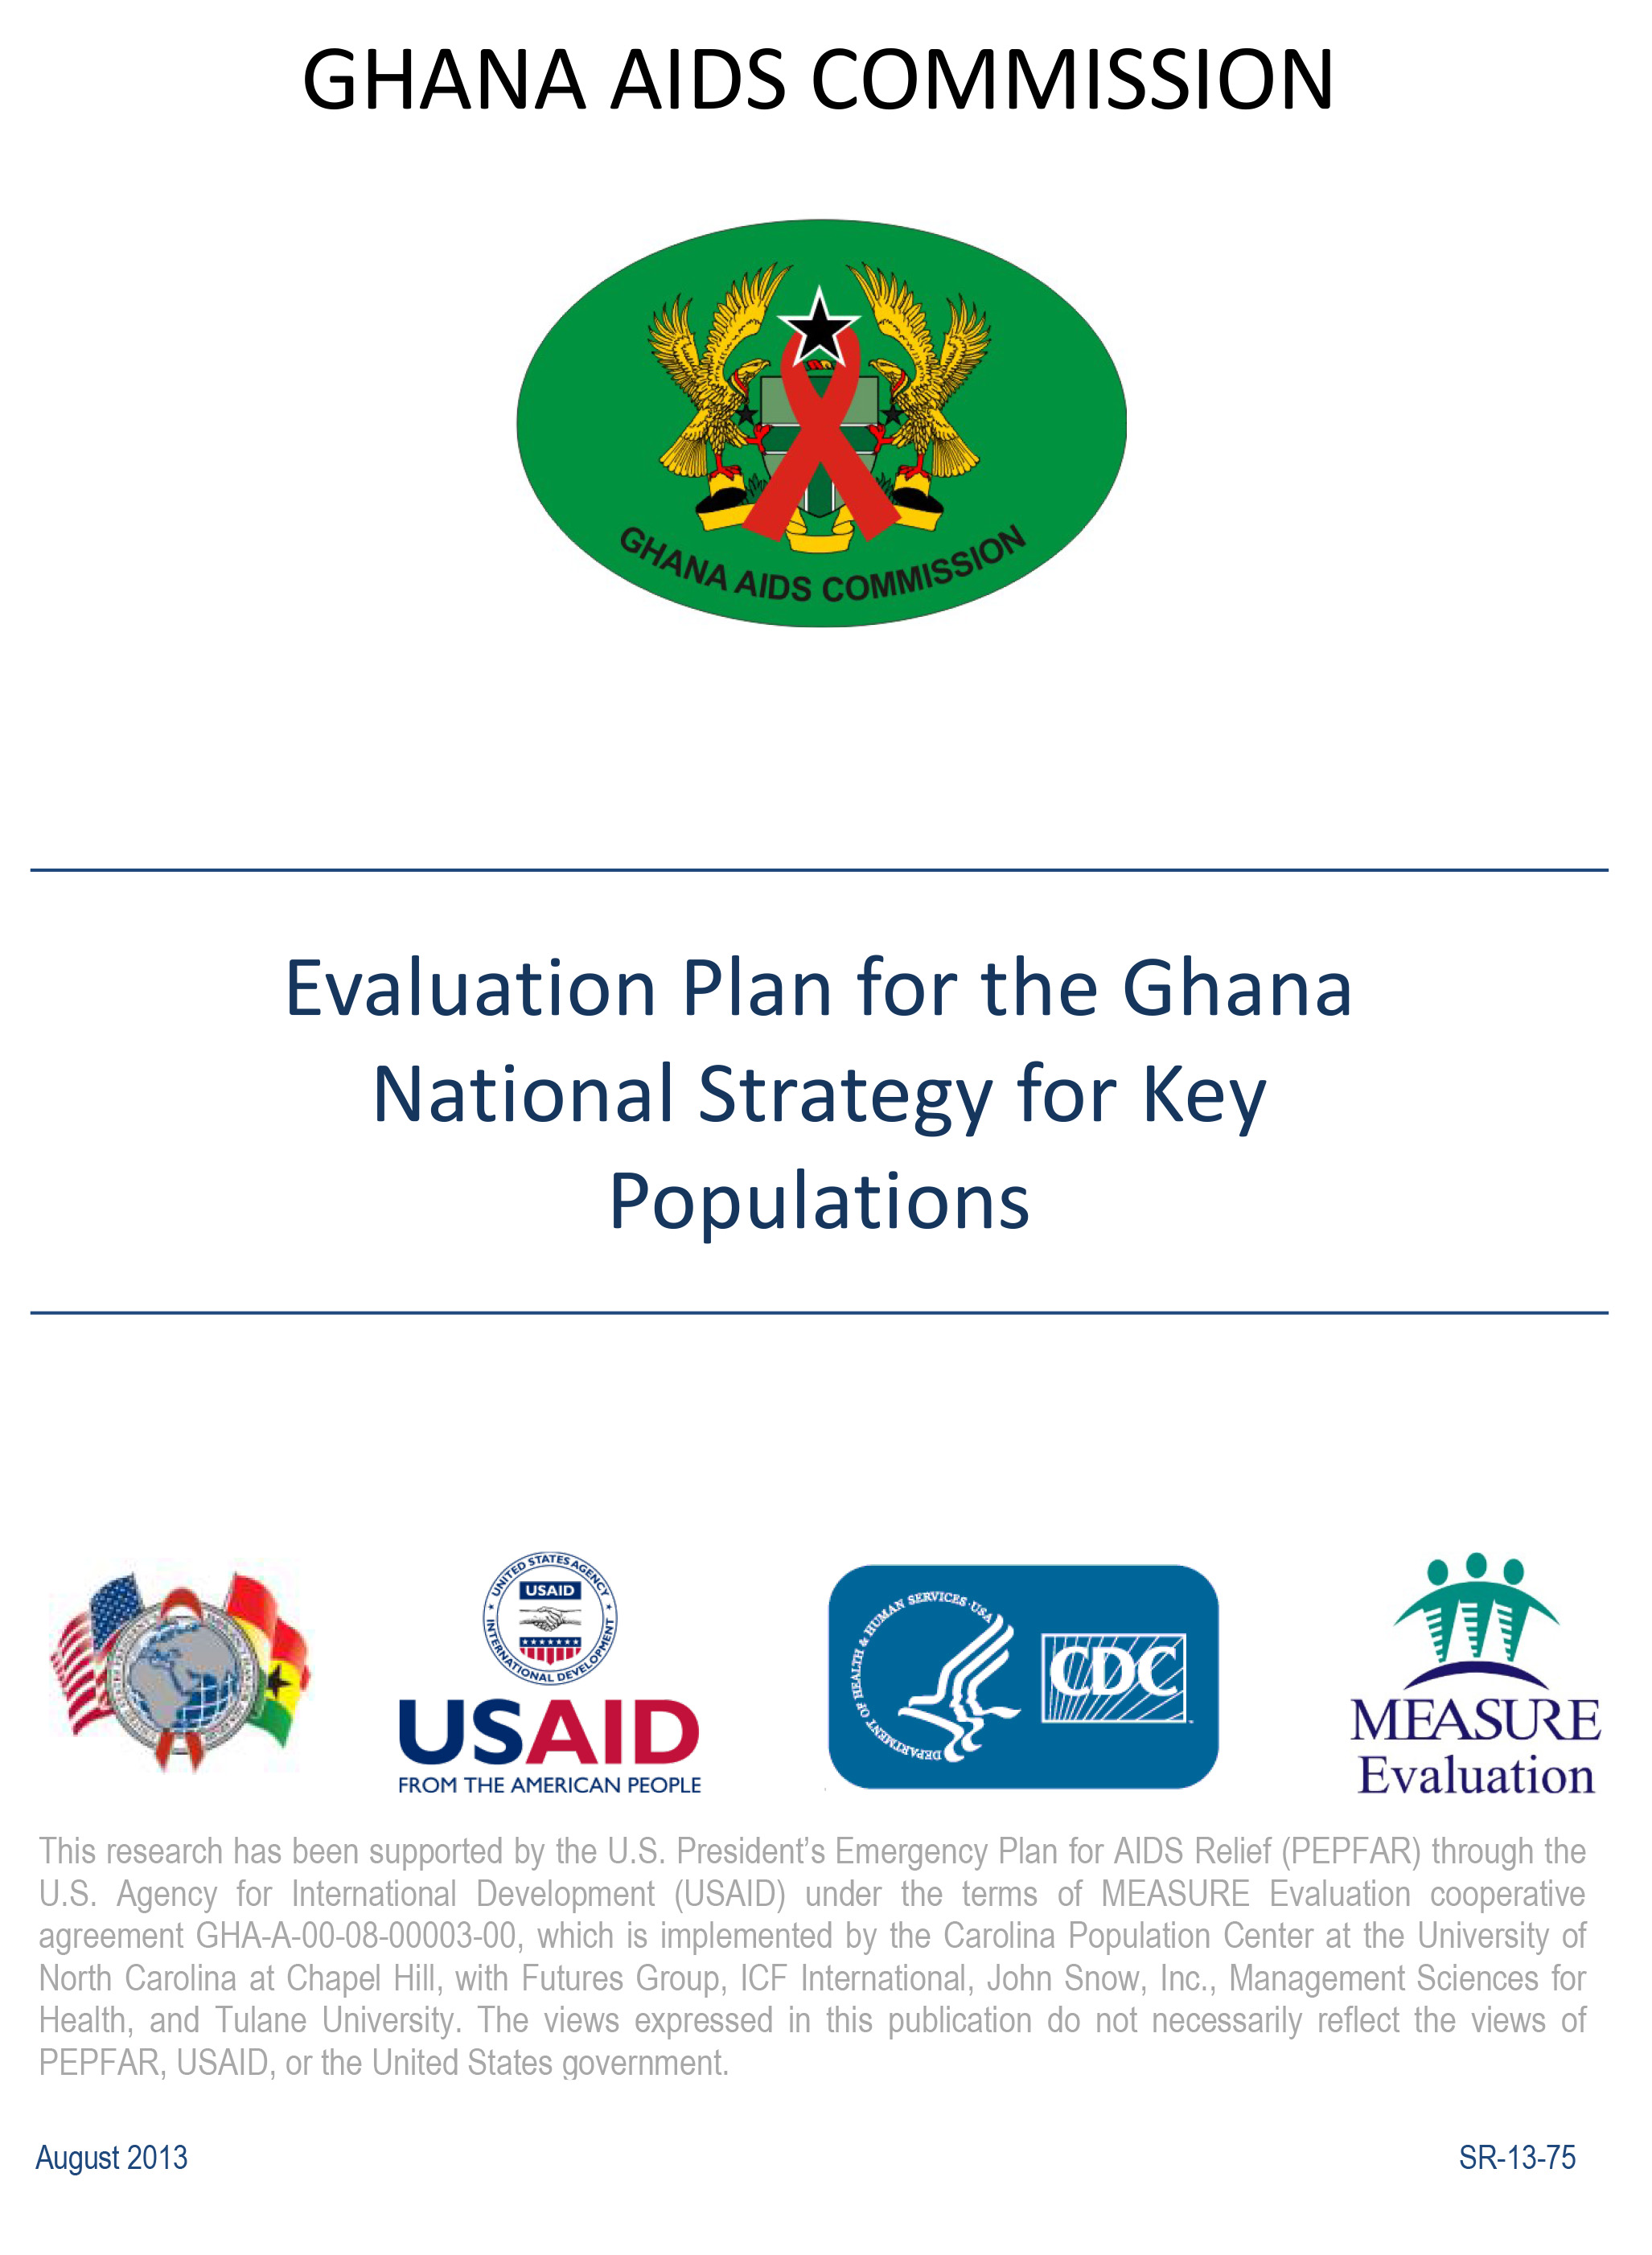 Evaluation Plan for the Ghana National Strategy for Key Populations